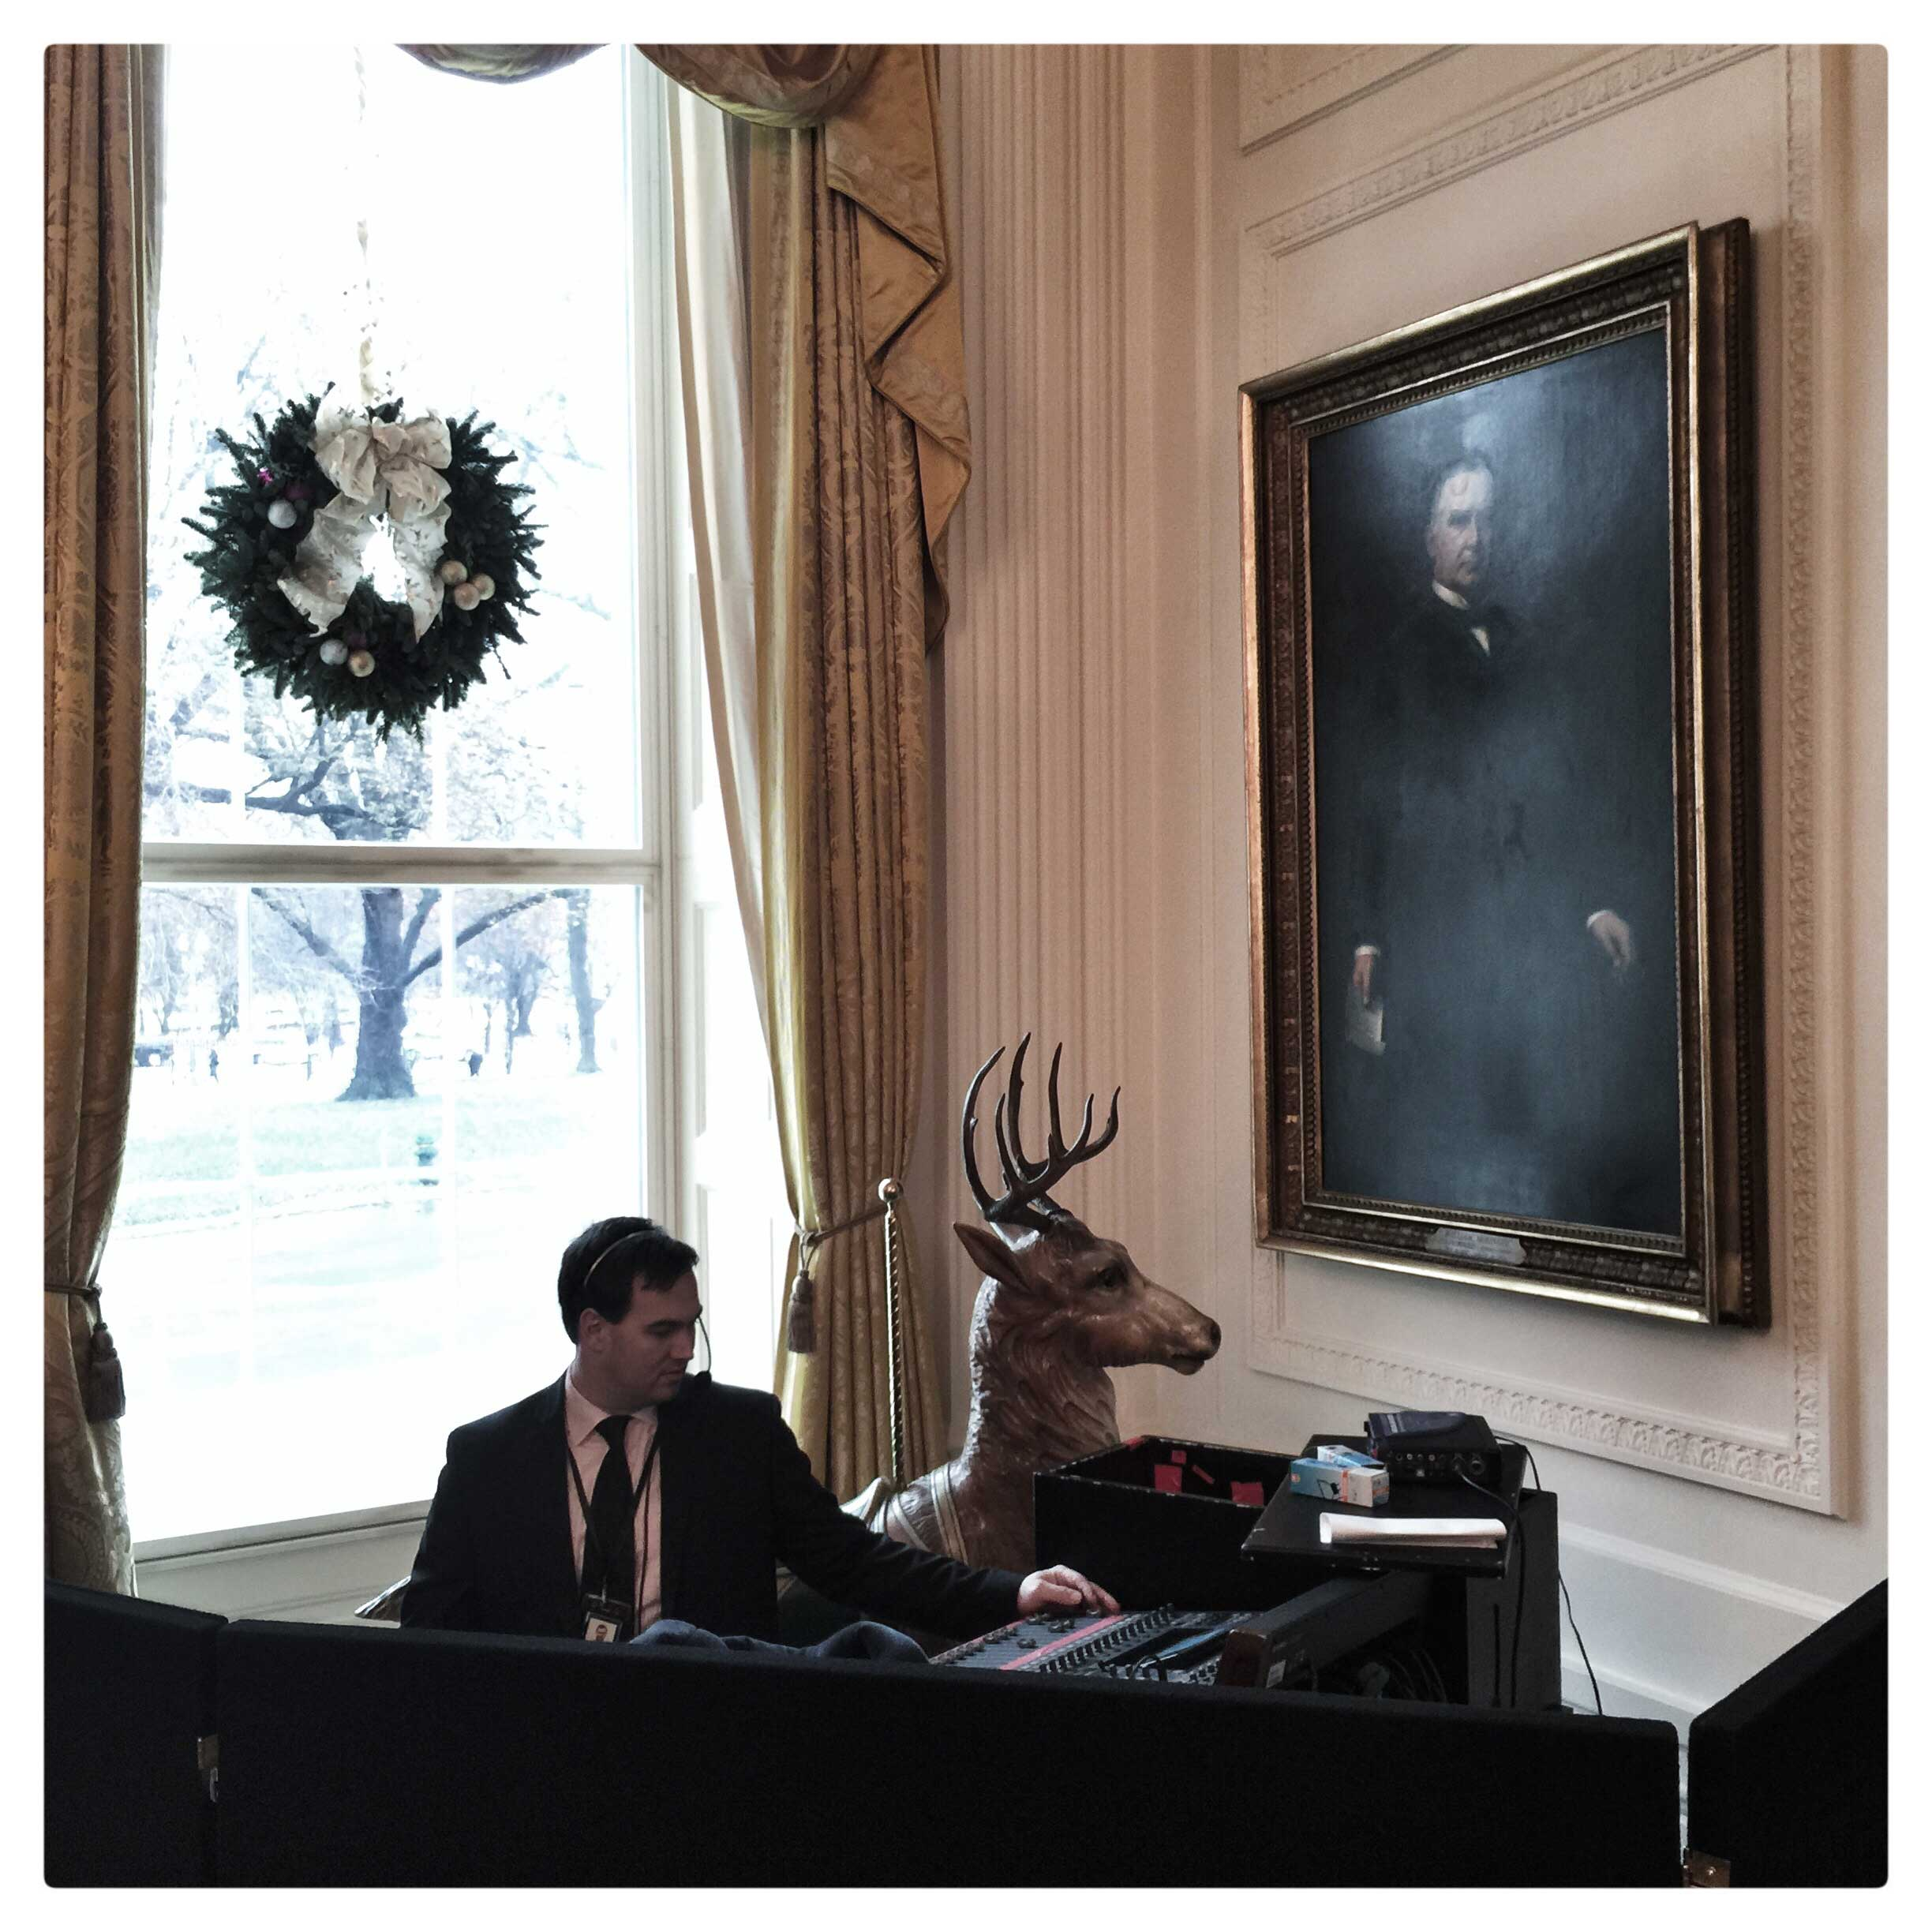 A sound technician works amongst holiday decorations at the White House.